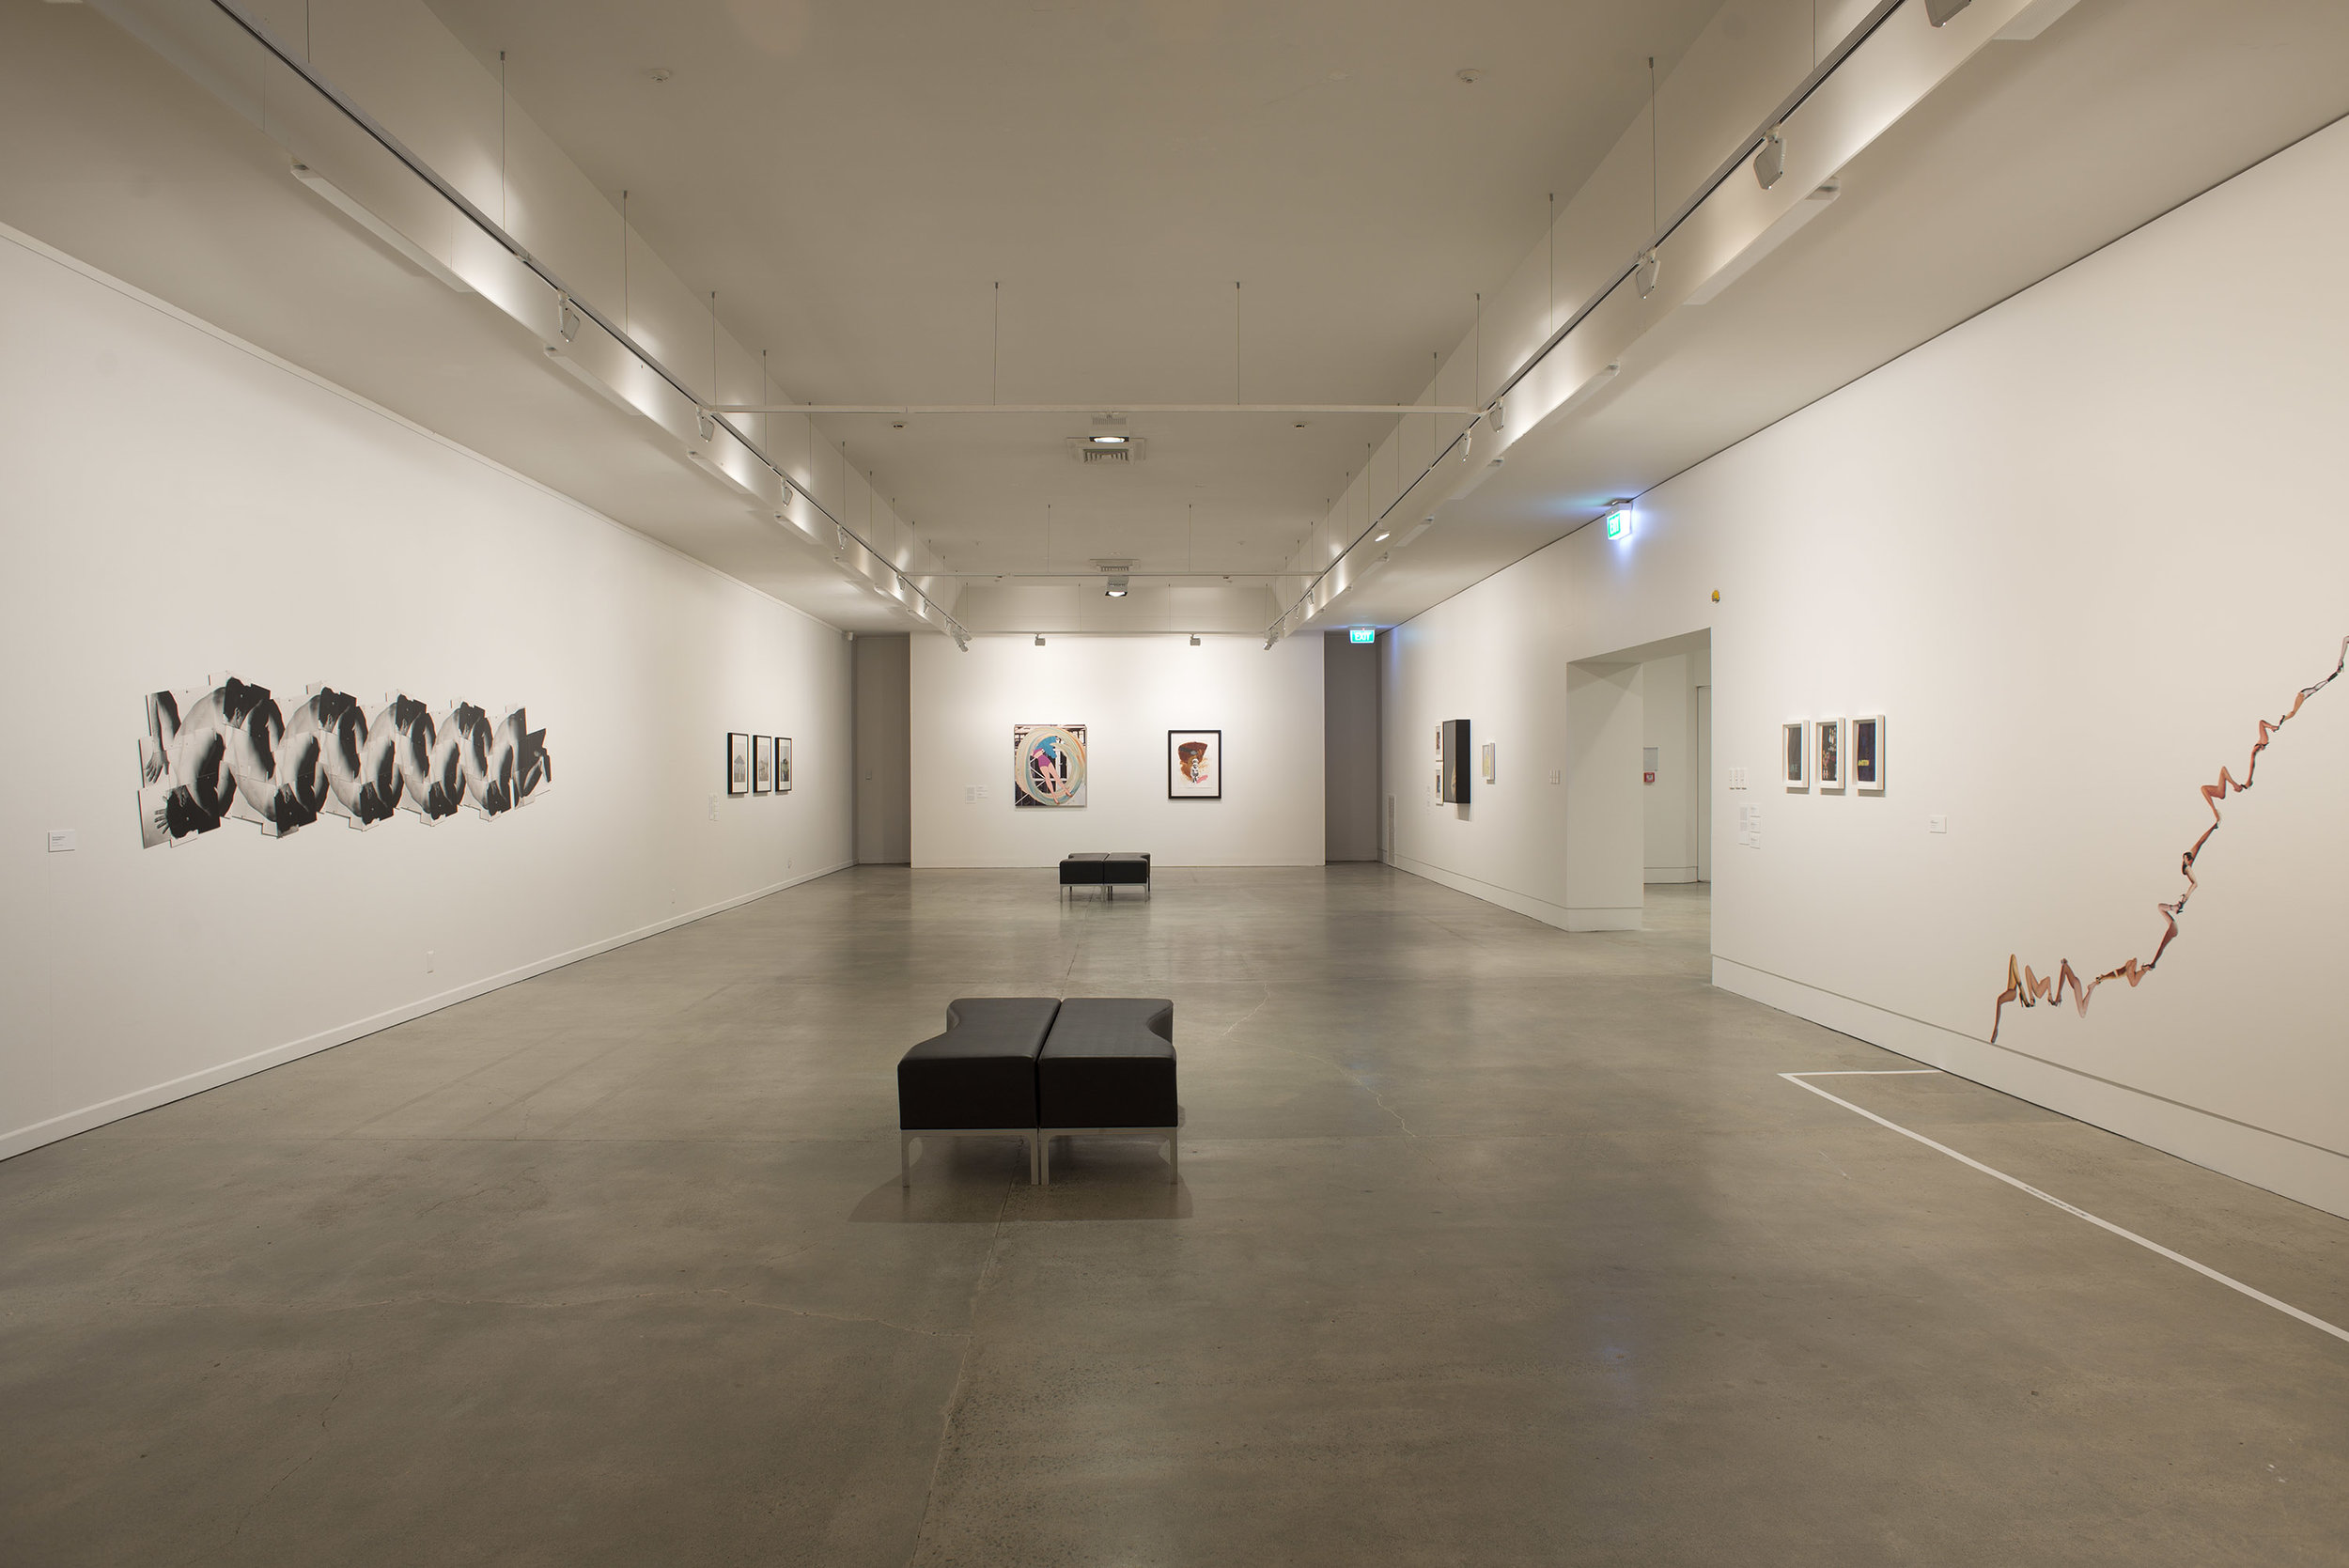 Cut + Paste: The Practice of Collage,  installation view, 2015. Courtesy of The Dowse Art Museum. Photo: John Lake